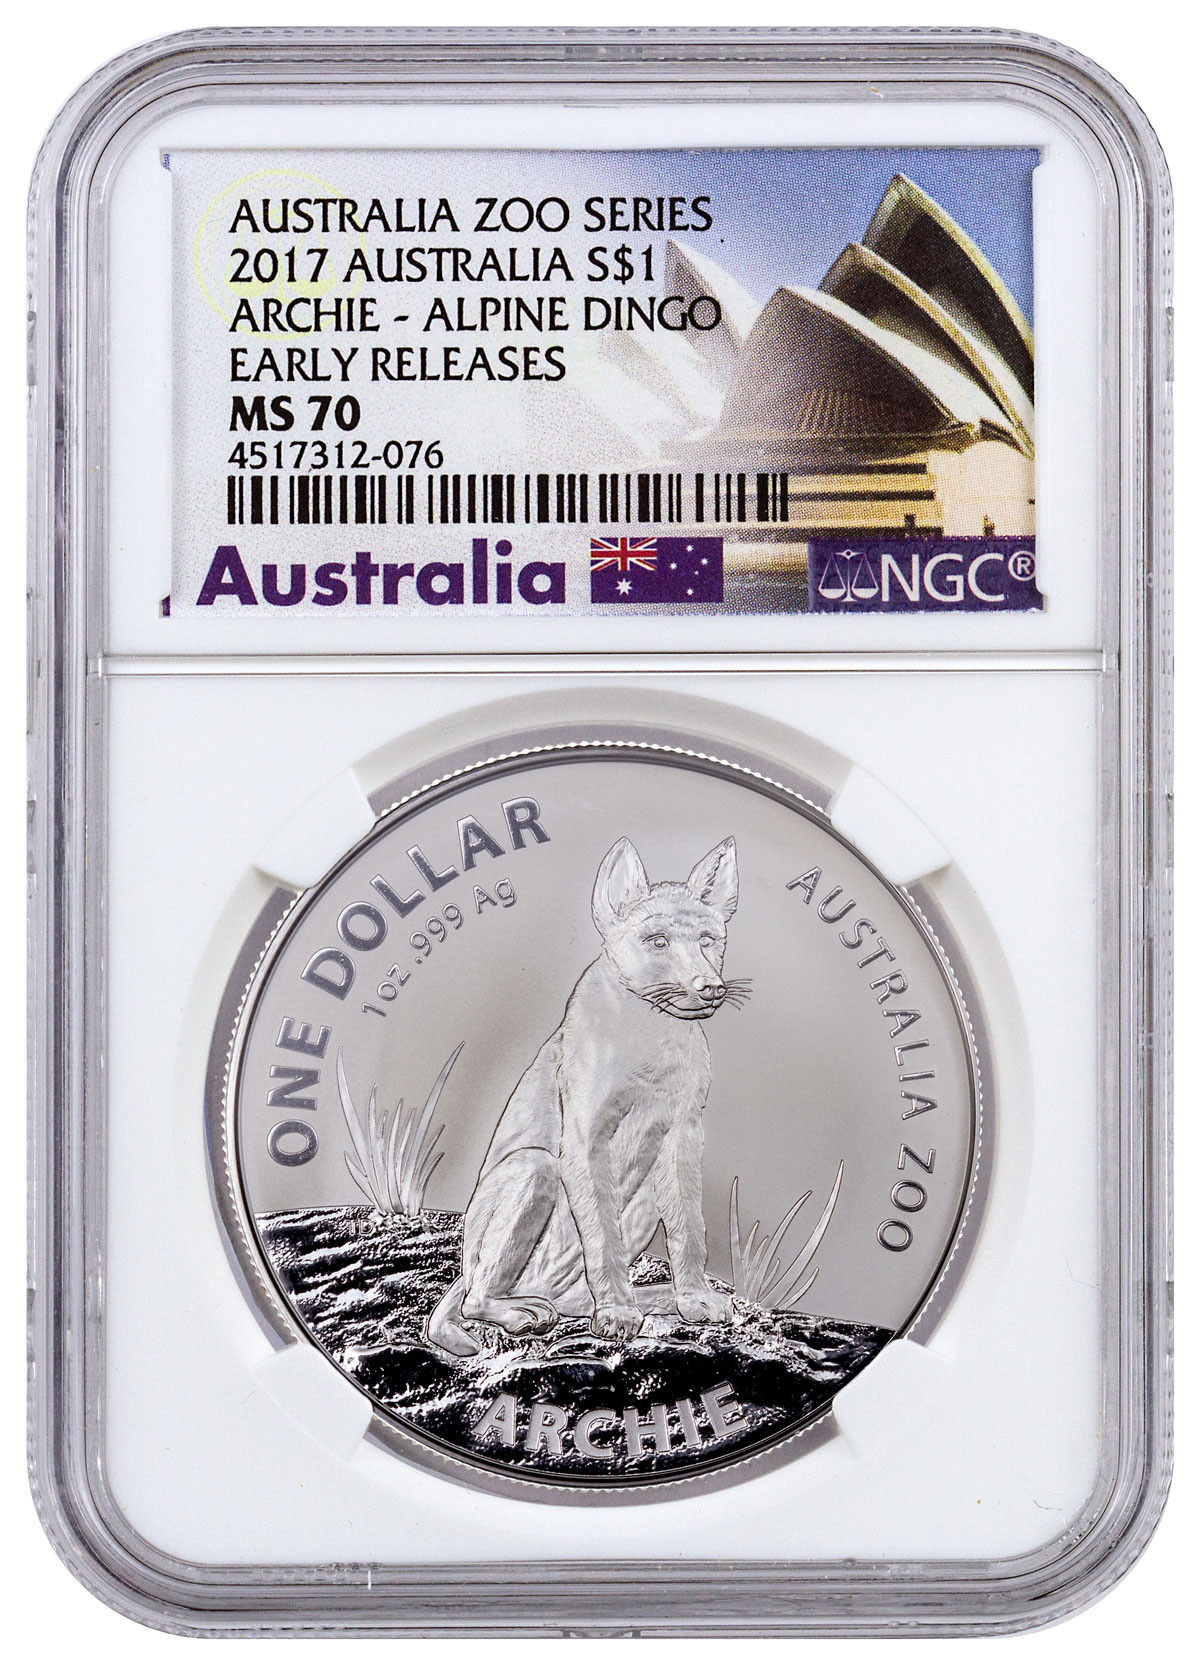 2017 Australia Australia Zoo - Archie the Alpine Dingo 1 oz Silver $1 Coin NGC MS70 ER (Exclusive Australia Label)